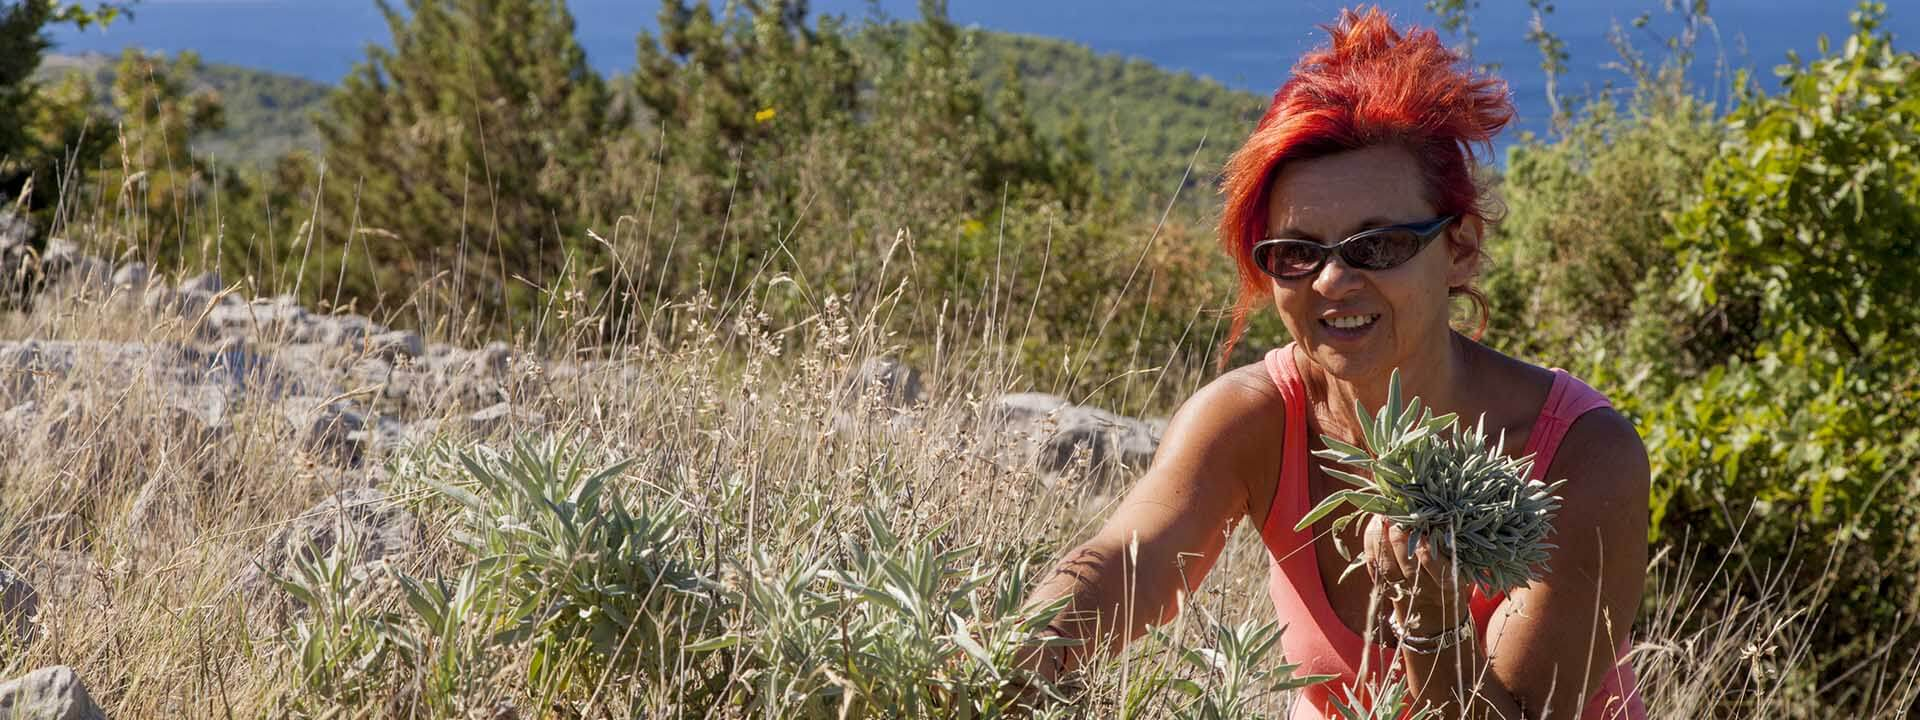 Mljet Hiking Daily TM Adventure Slide 6